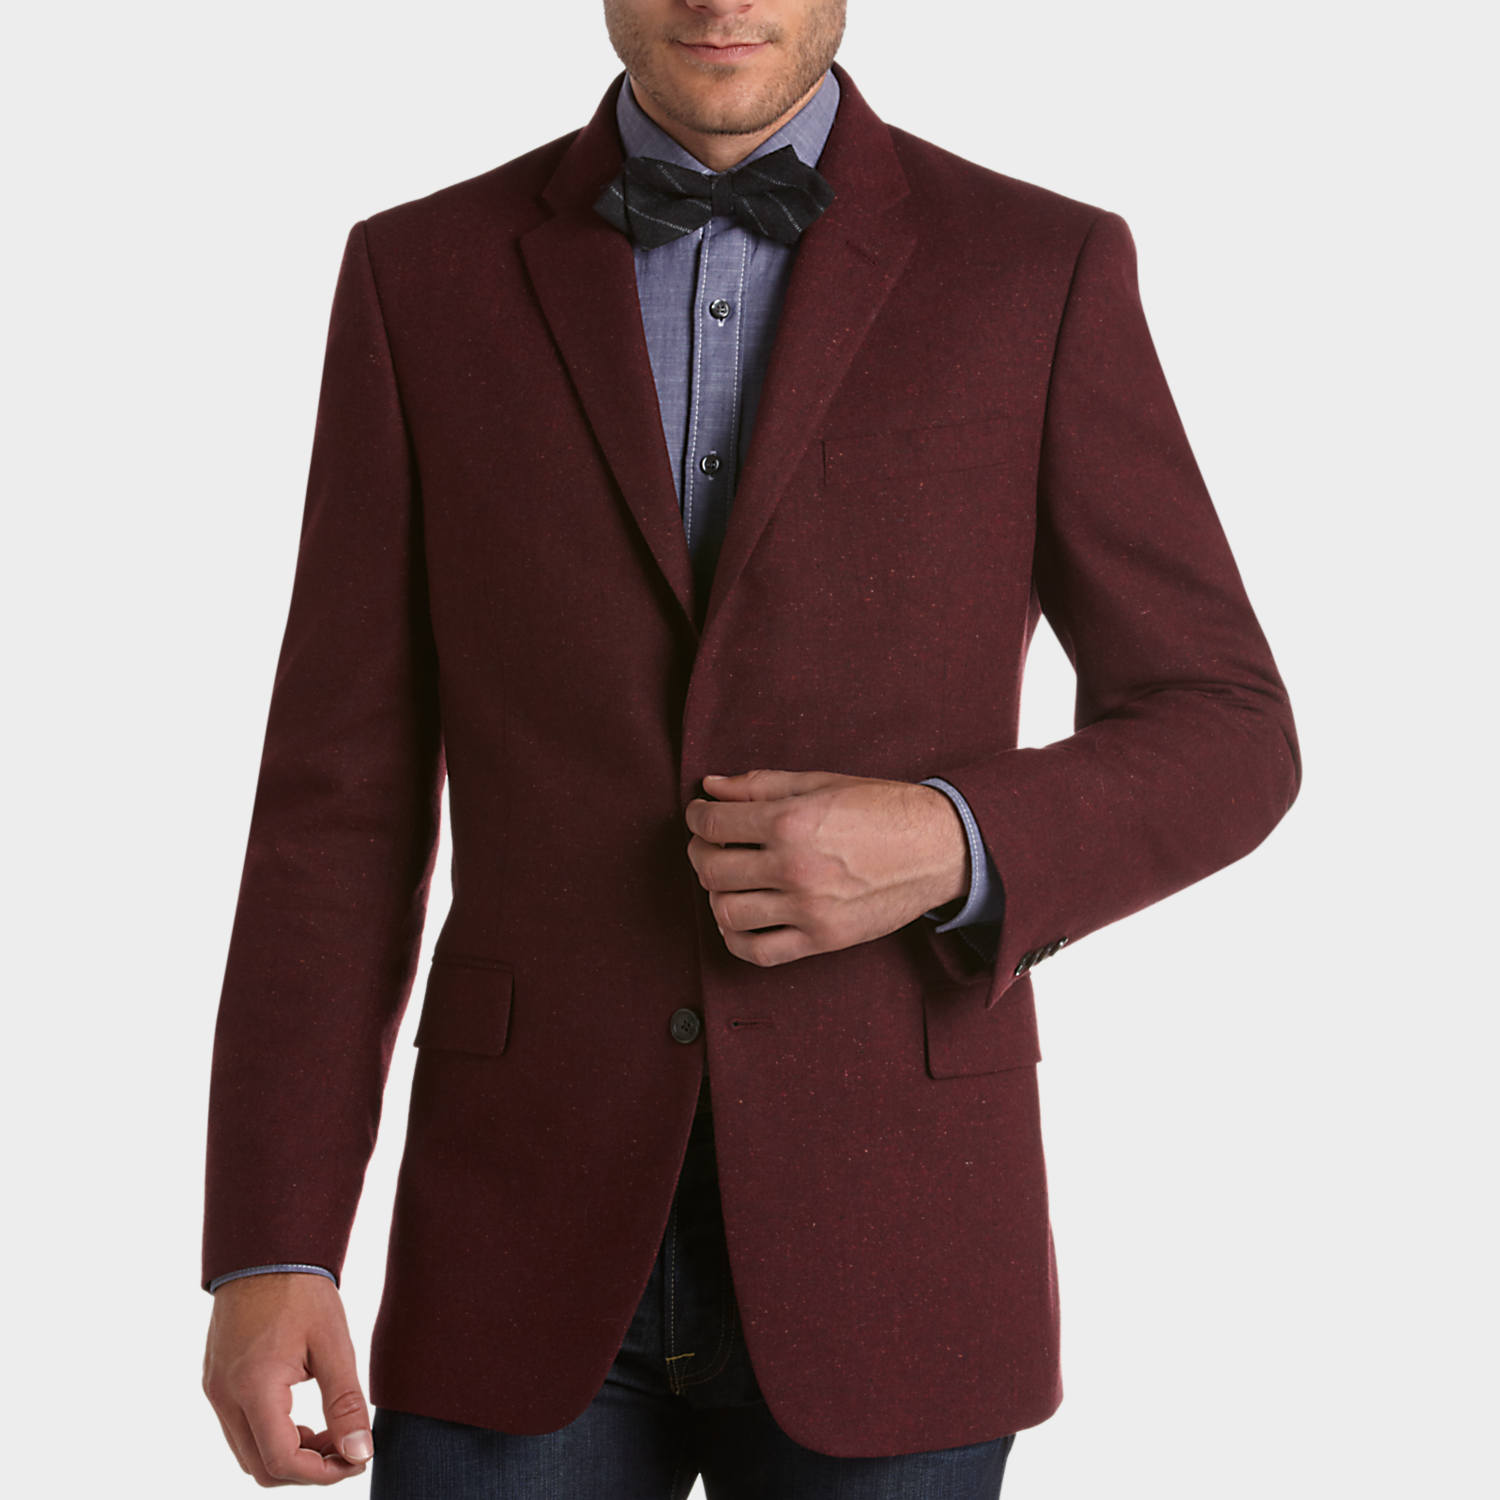 Tommy Hilfiger Red Tweed Slim Fit Sport Coat - Men's Slim Fit ...